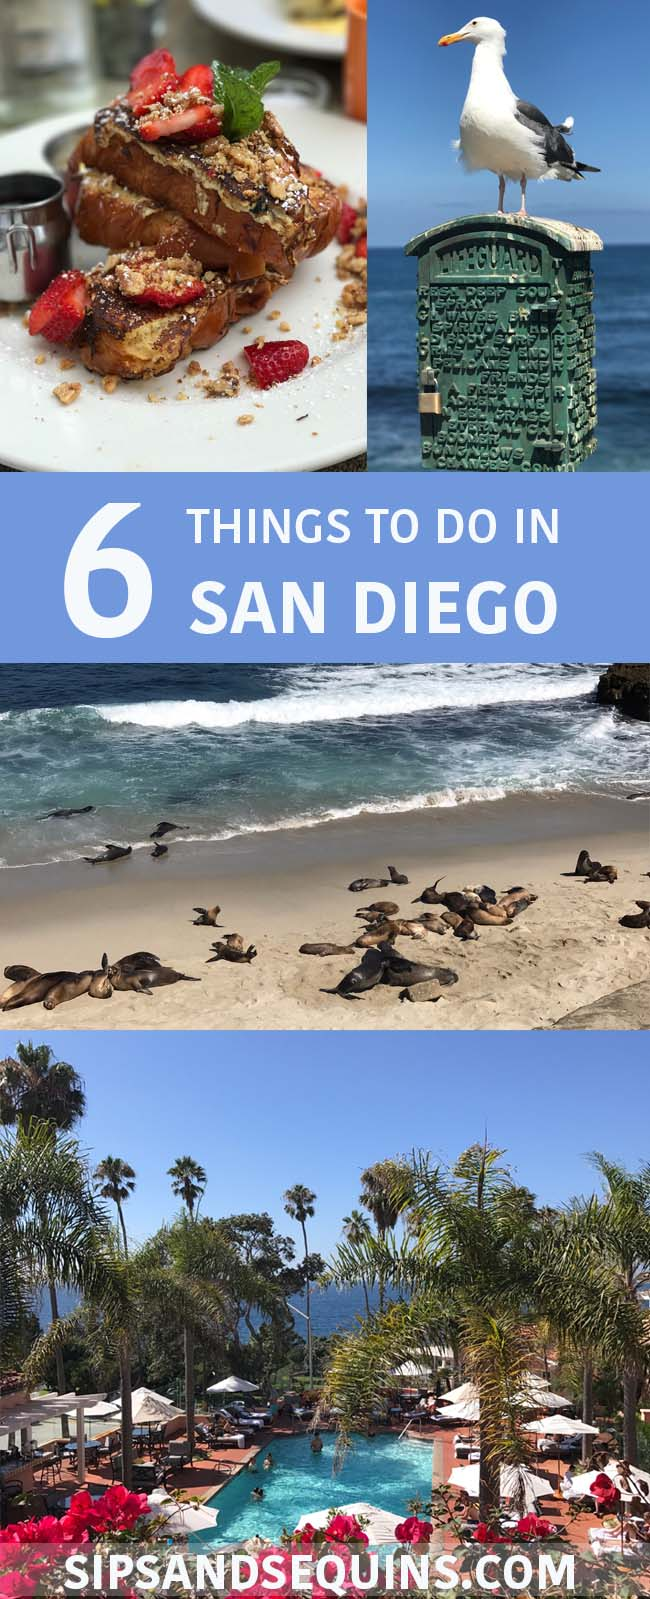 6 Things To Do In San Diego